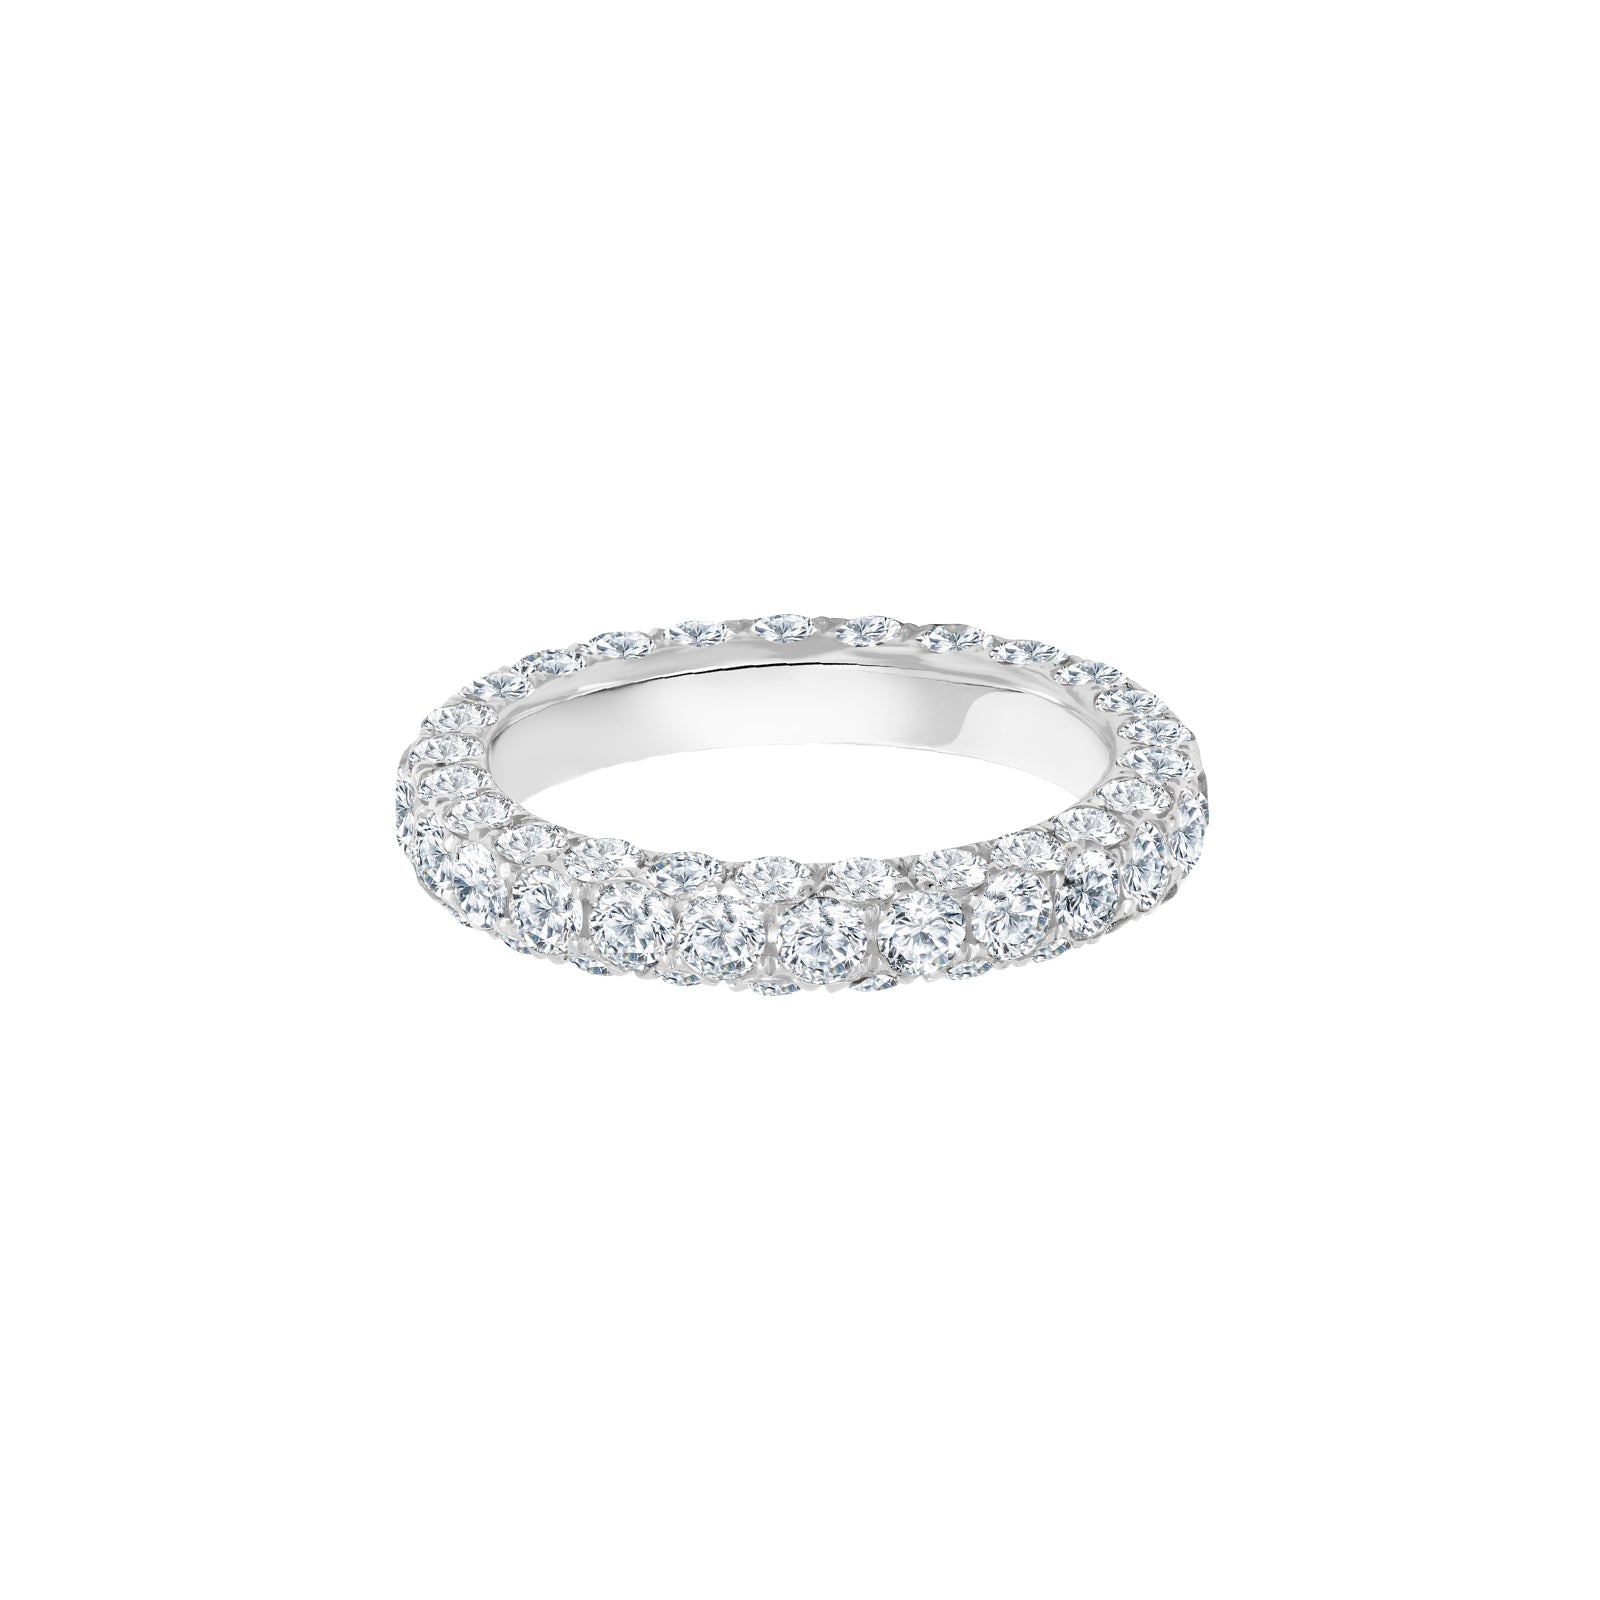 Graziela Triple Sided Diamond Band Ring - White Gold - Rings - Broken English Jewelry